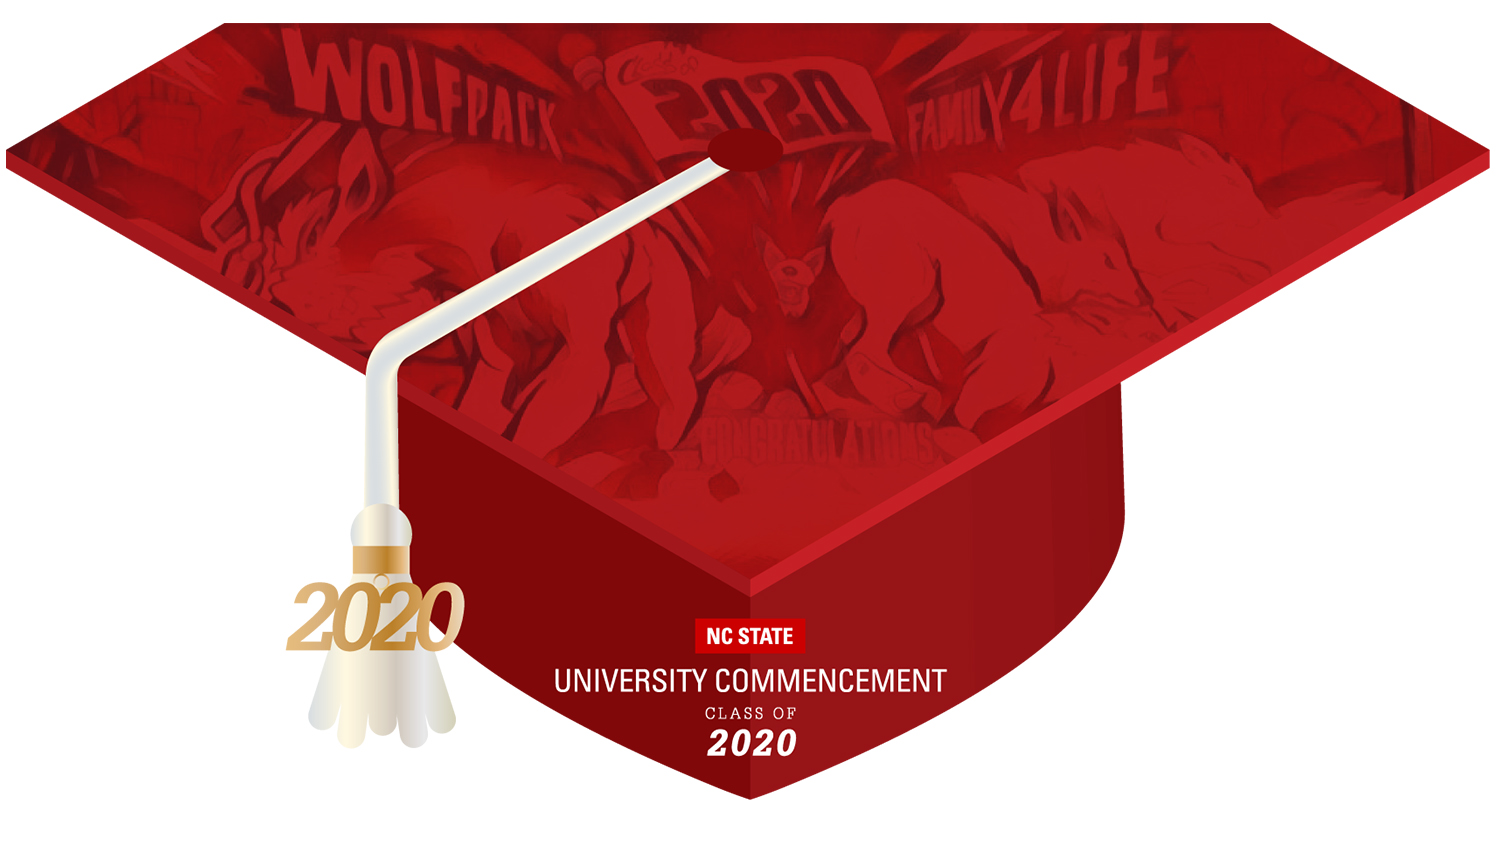 NC State graduation cap illustration